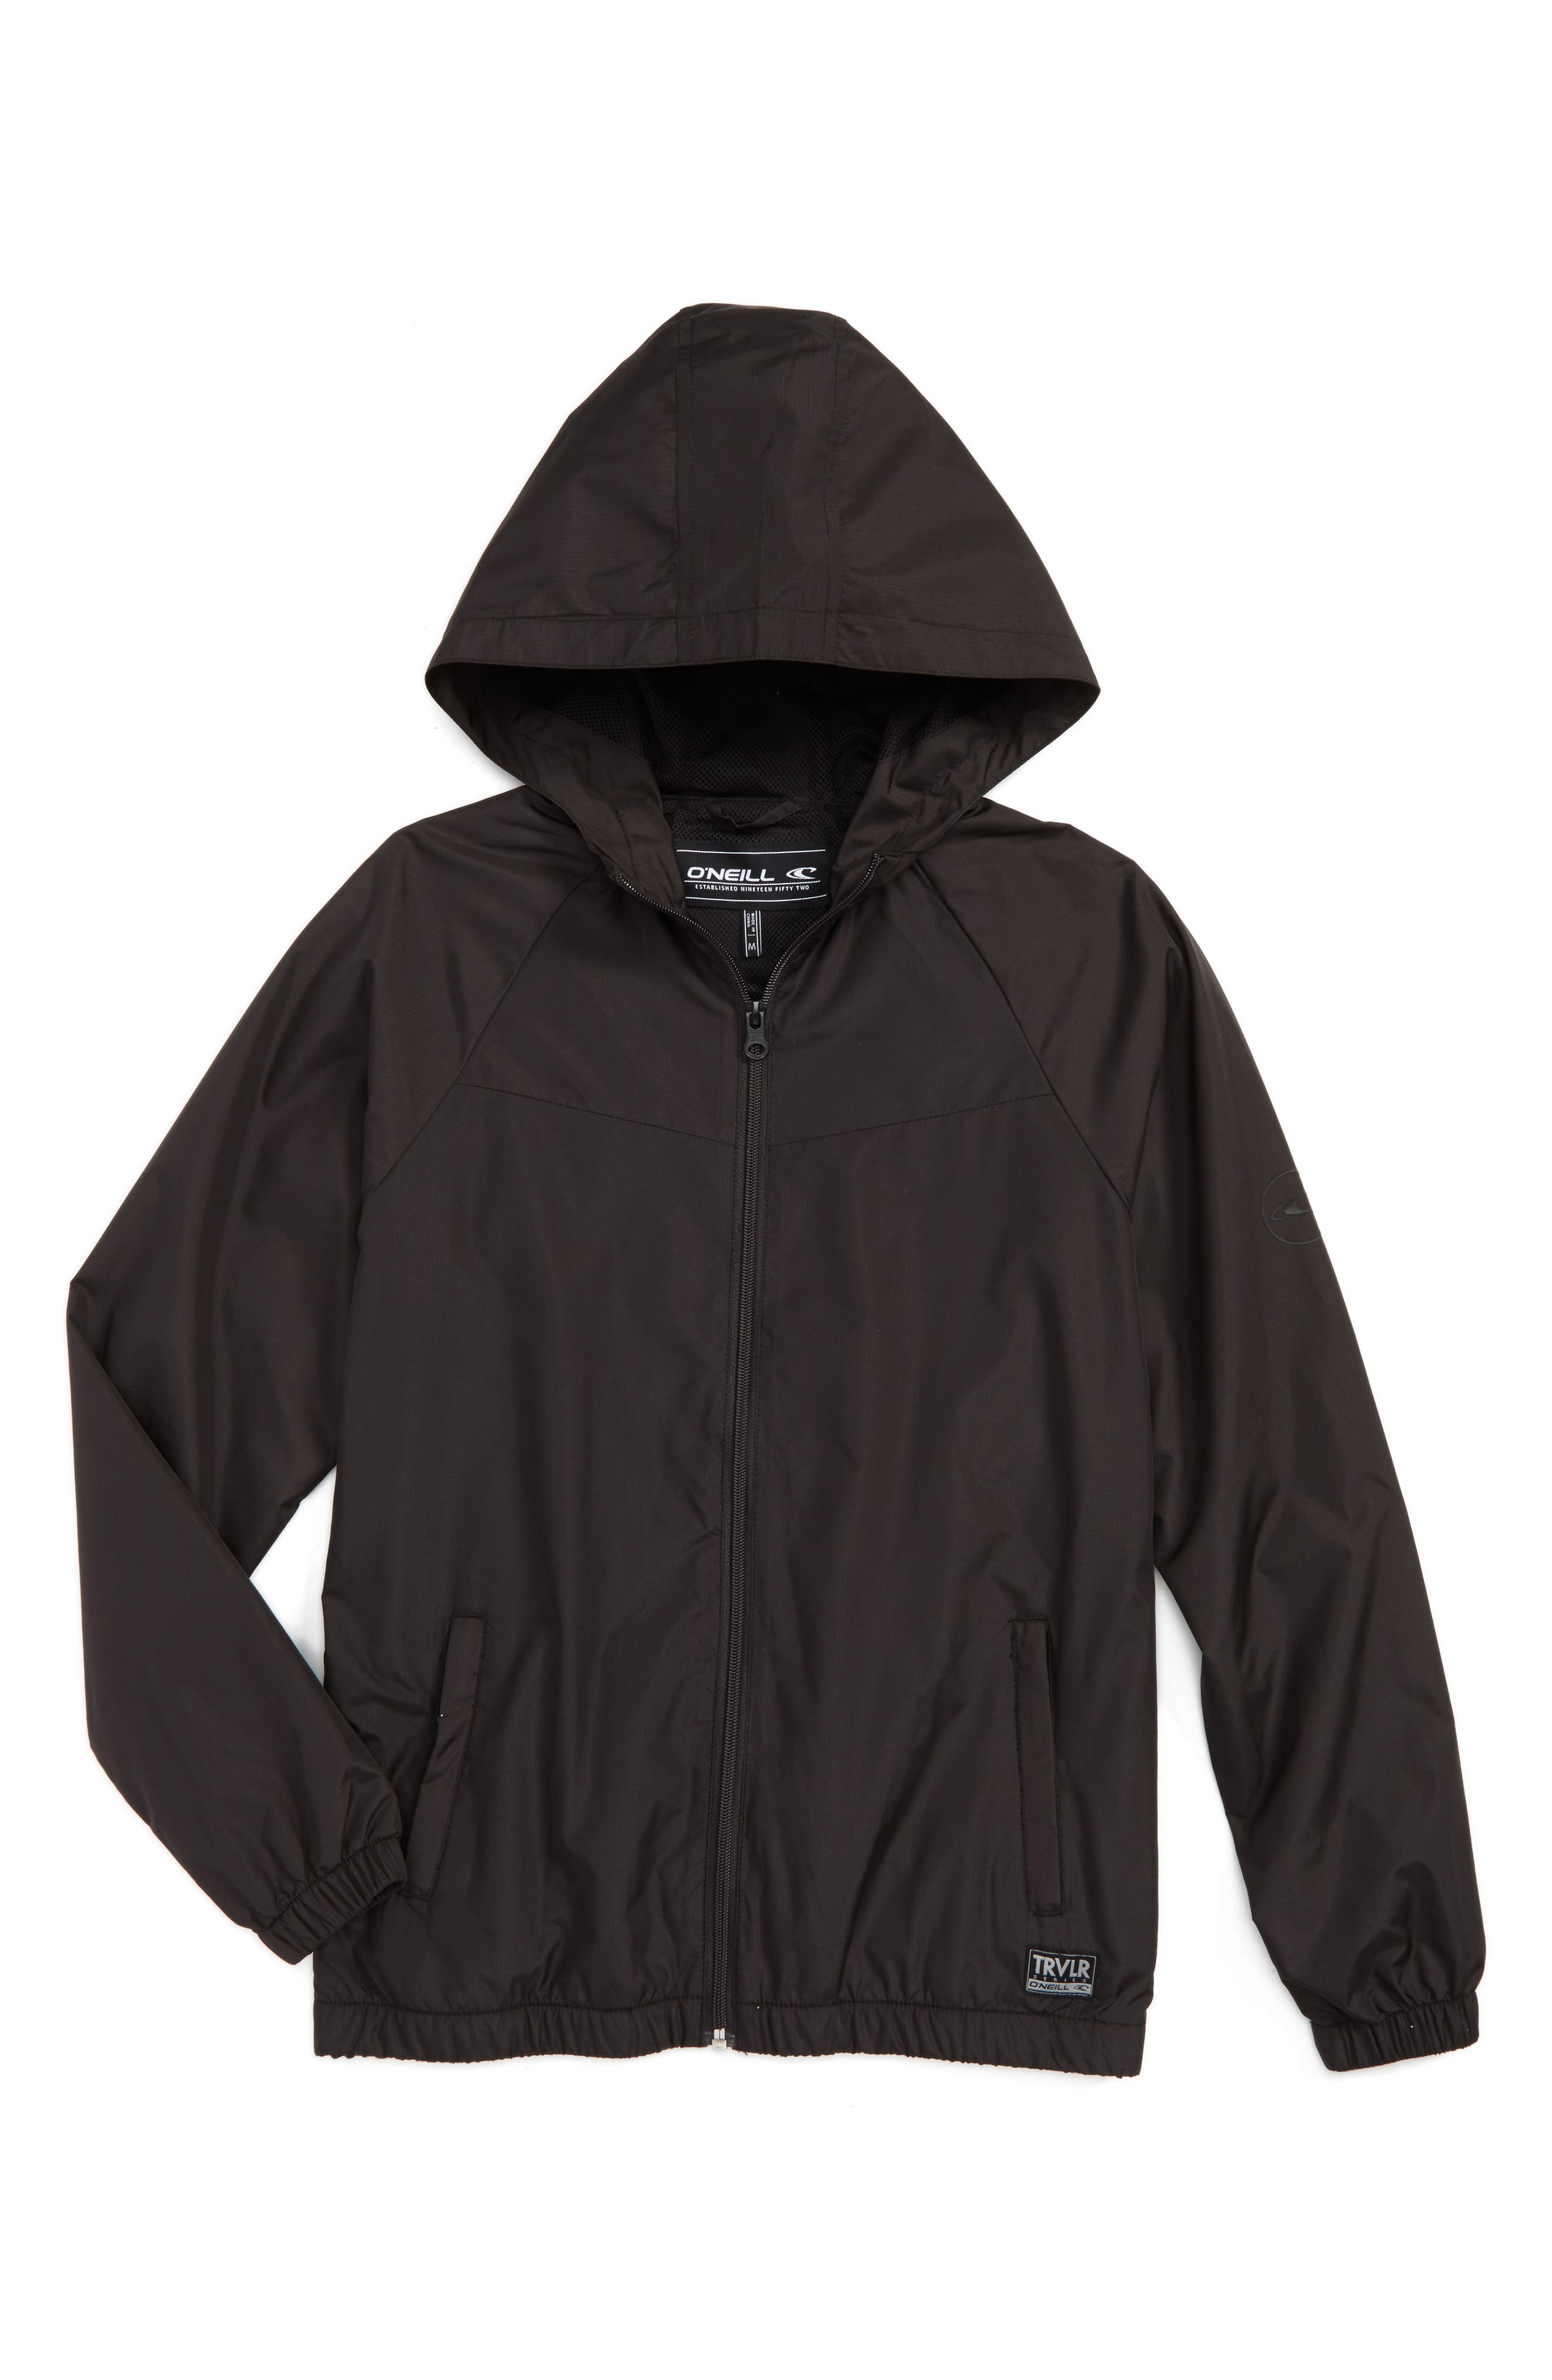 Main Image - O'Neill Traveler Packable Windbreaker Jacket (Toddler Boys, Little Boys & Big Boys)